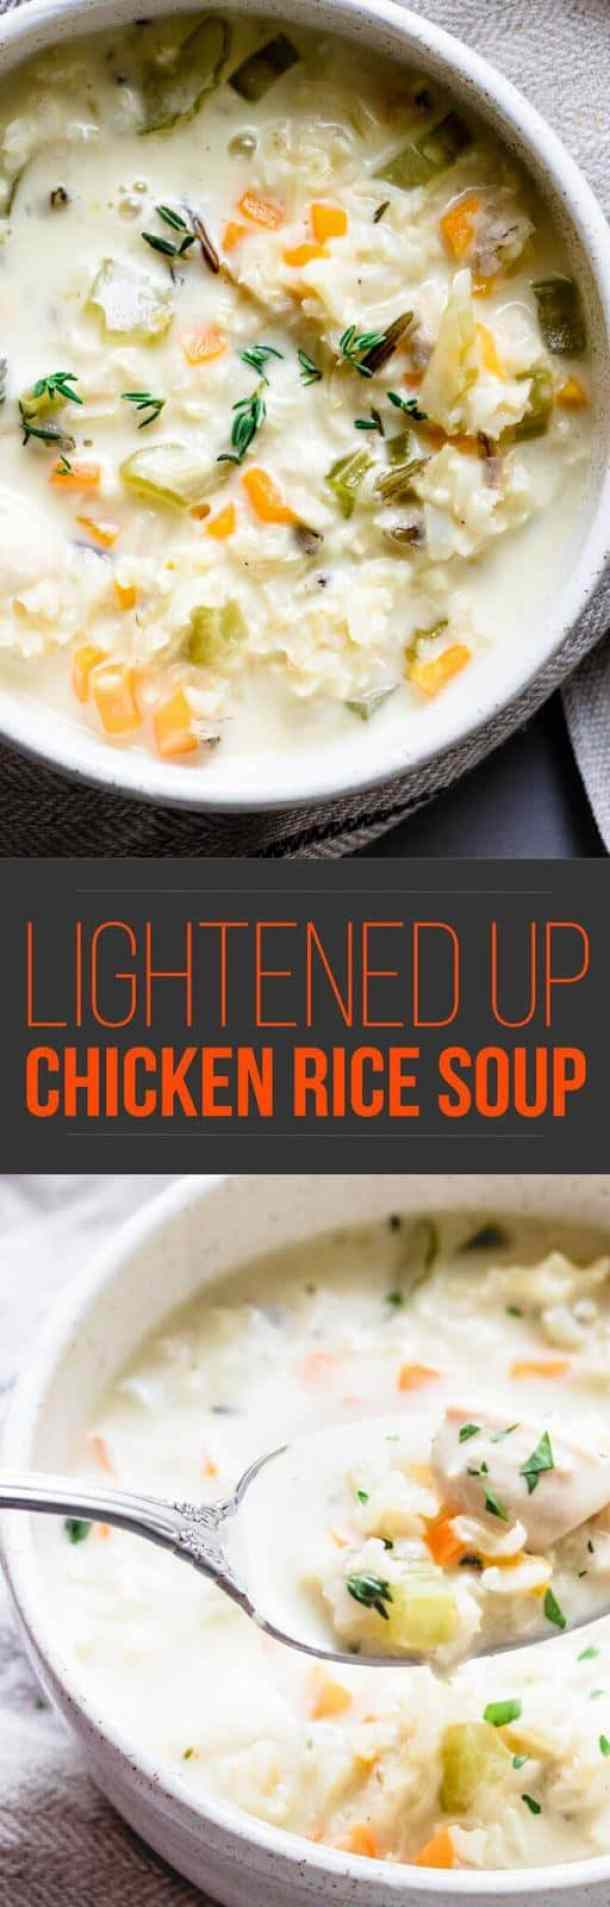 There's no better way to keep the fall wind at bay than to sit down and cozy up with this nourishing and hearty lightened up creamy chicken rice soup. #soup #healthy #dinner #quickfood